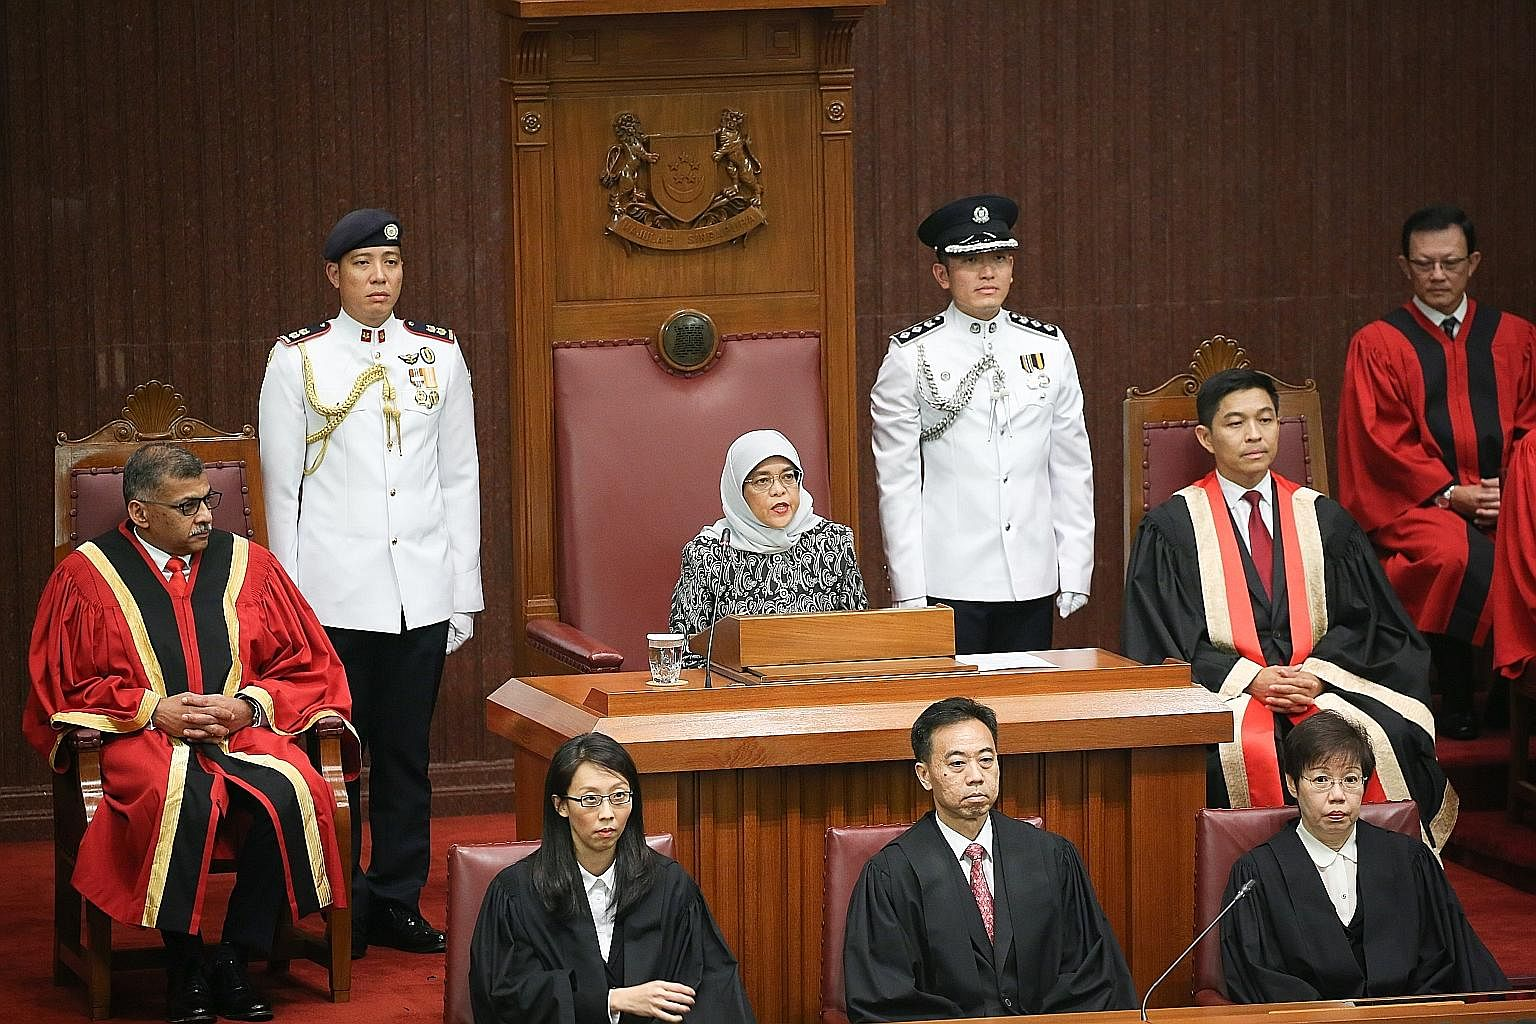 President Halimah Yacob, flanked by Speaker of Parliament Tan Chuan-Jin and Chief Justice Sundaresh Menon, representing the different branches of government, addressed a packed chamber at Parliament House yesterday.